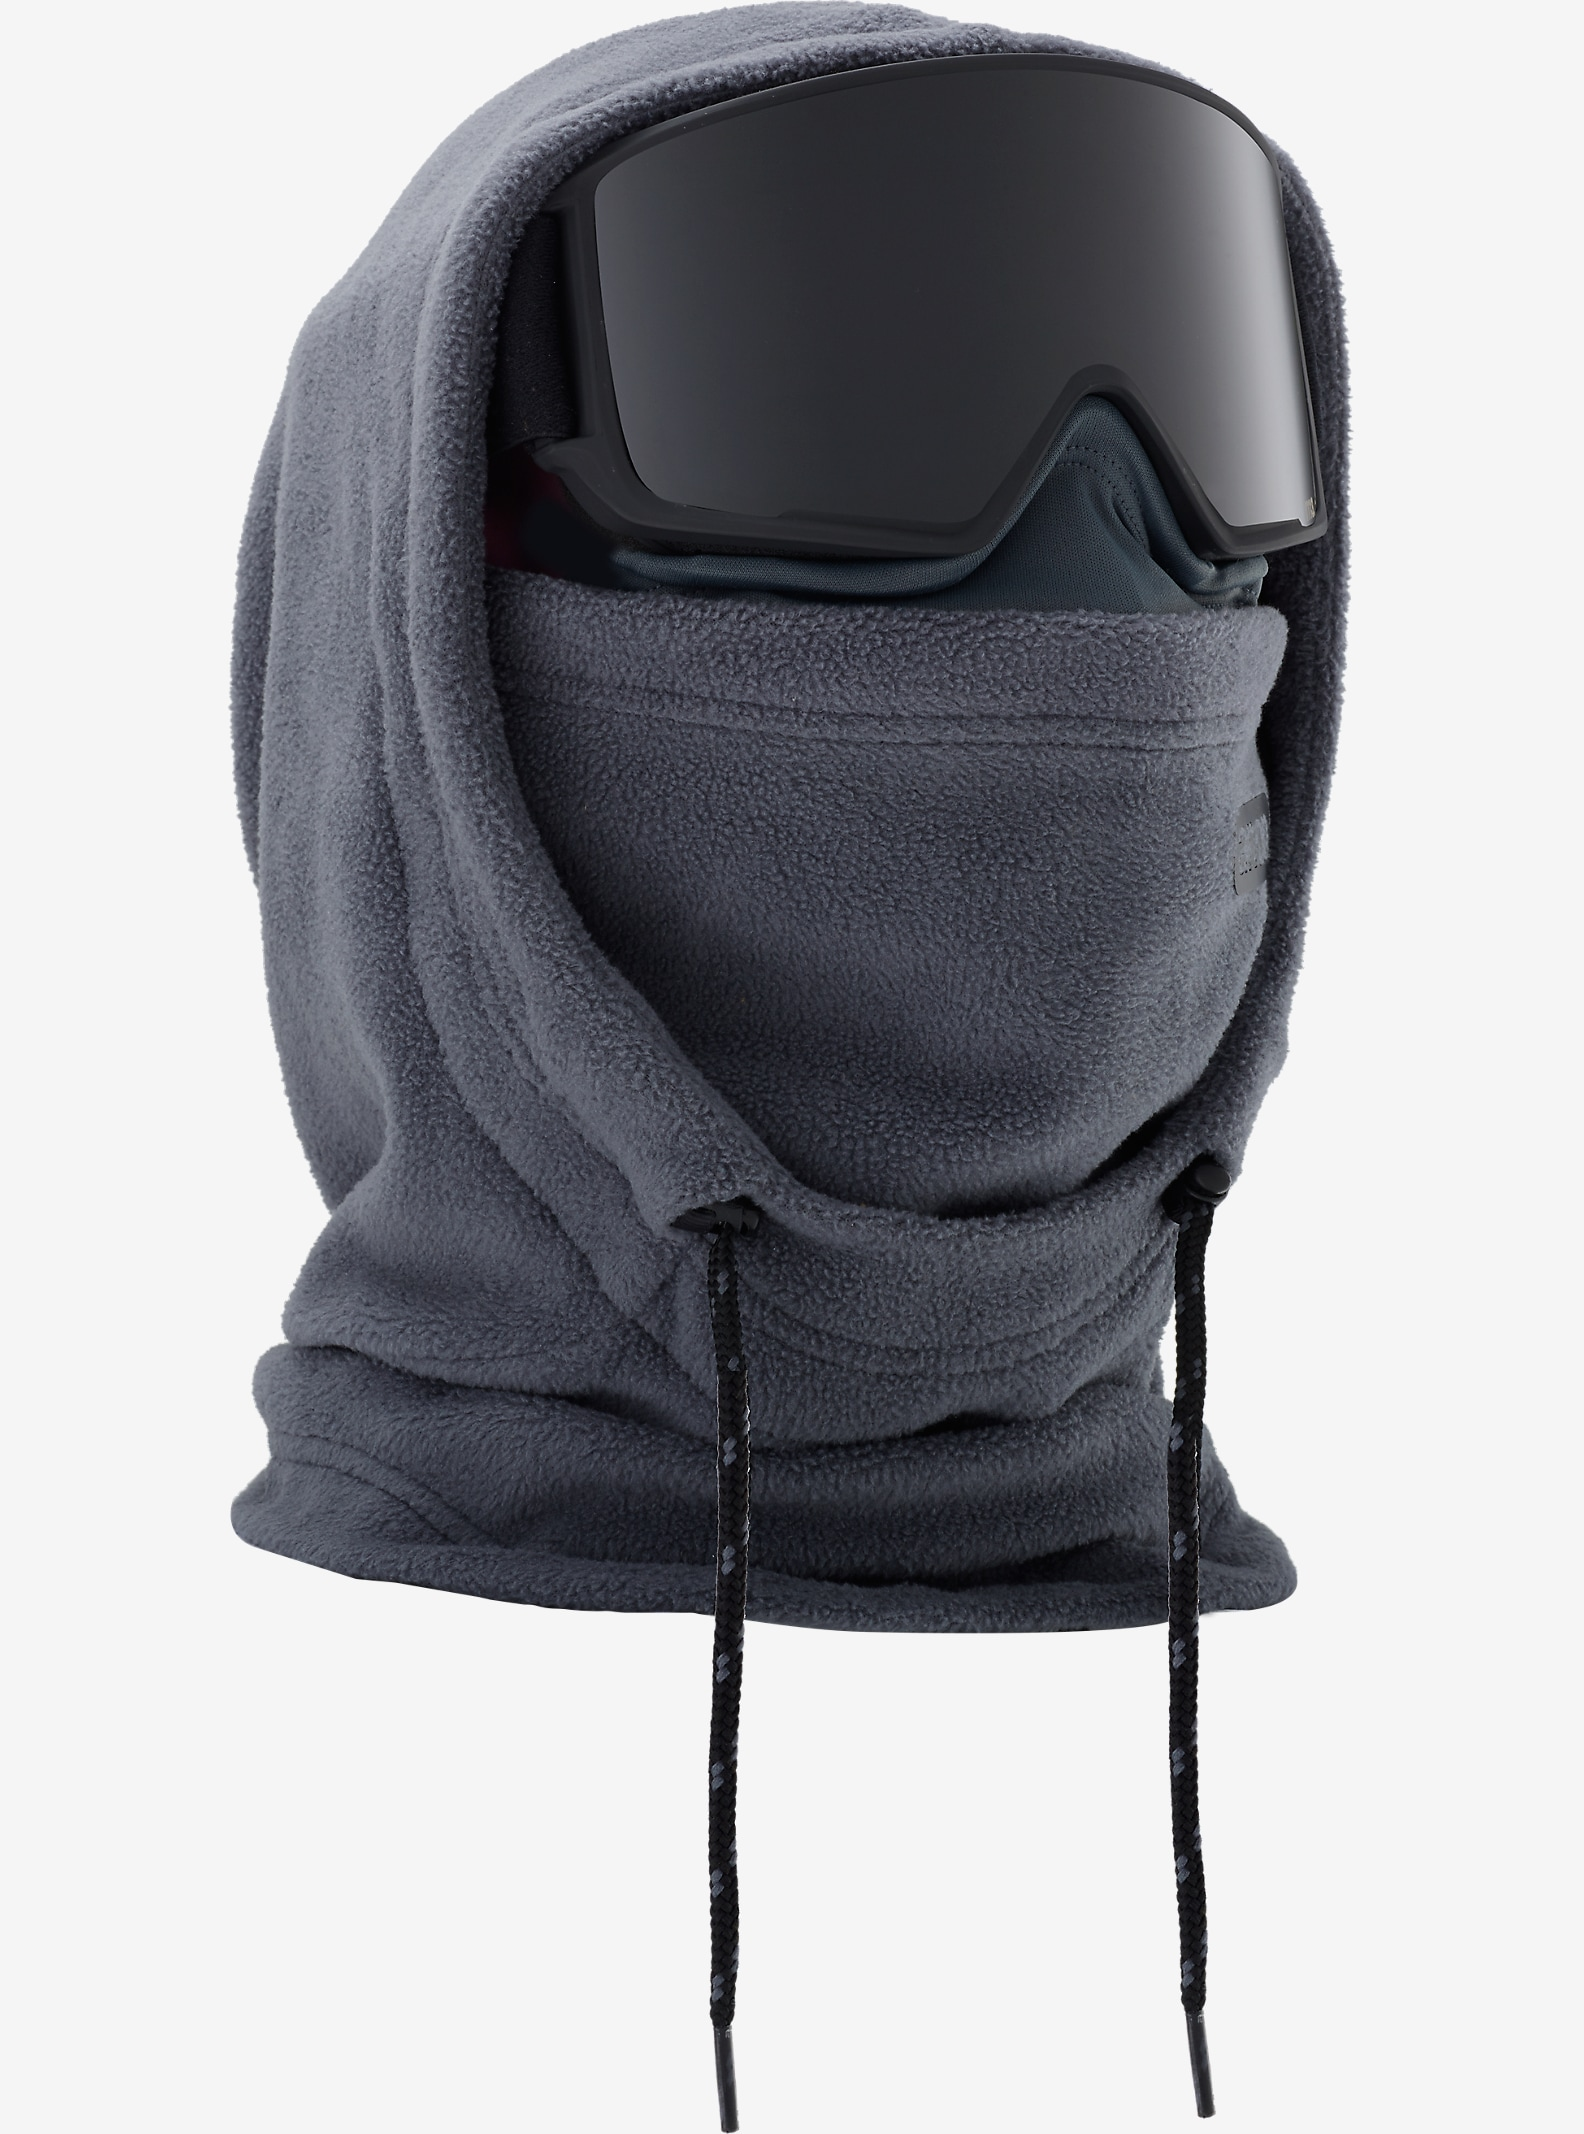 anon. MFI XL Hooded Clava shown in Gray